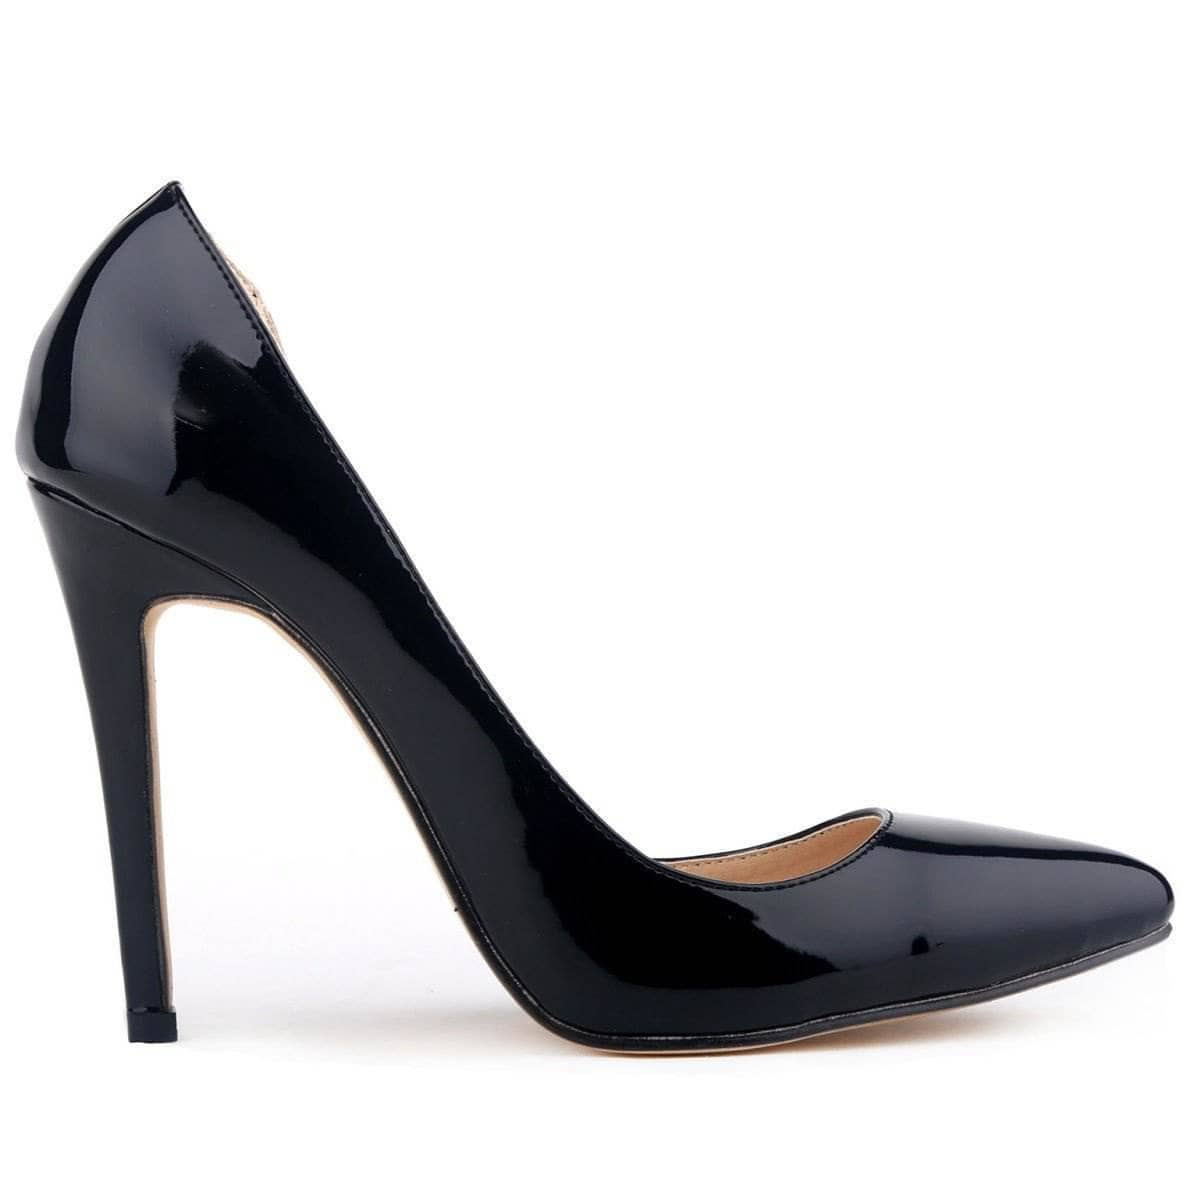 Jimmy Hoo Accessories Classic Pumps - Two Colors